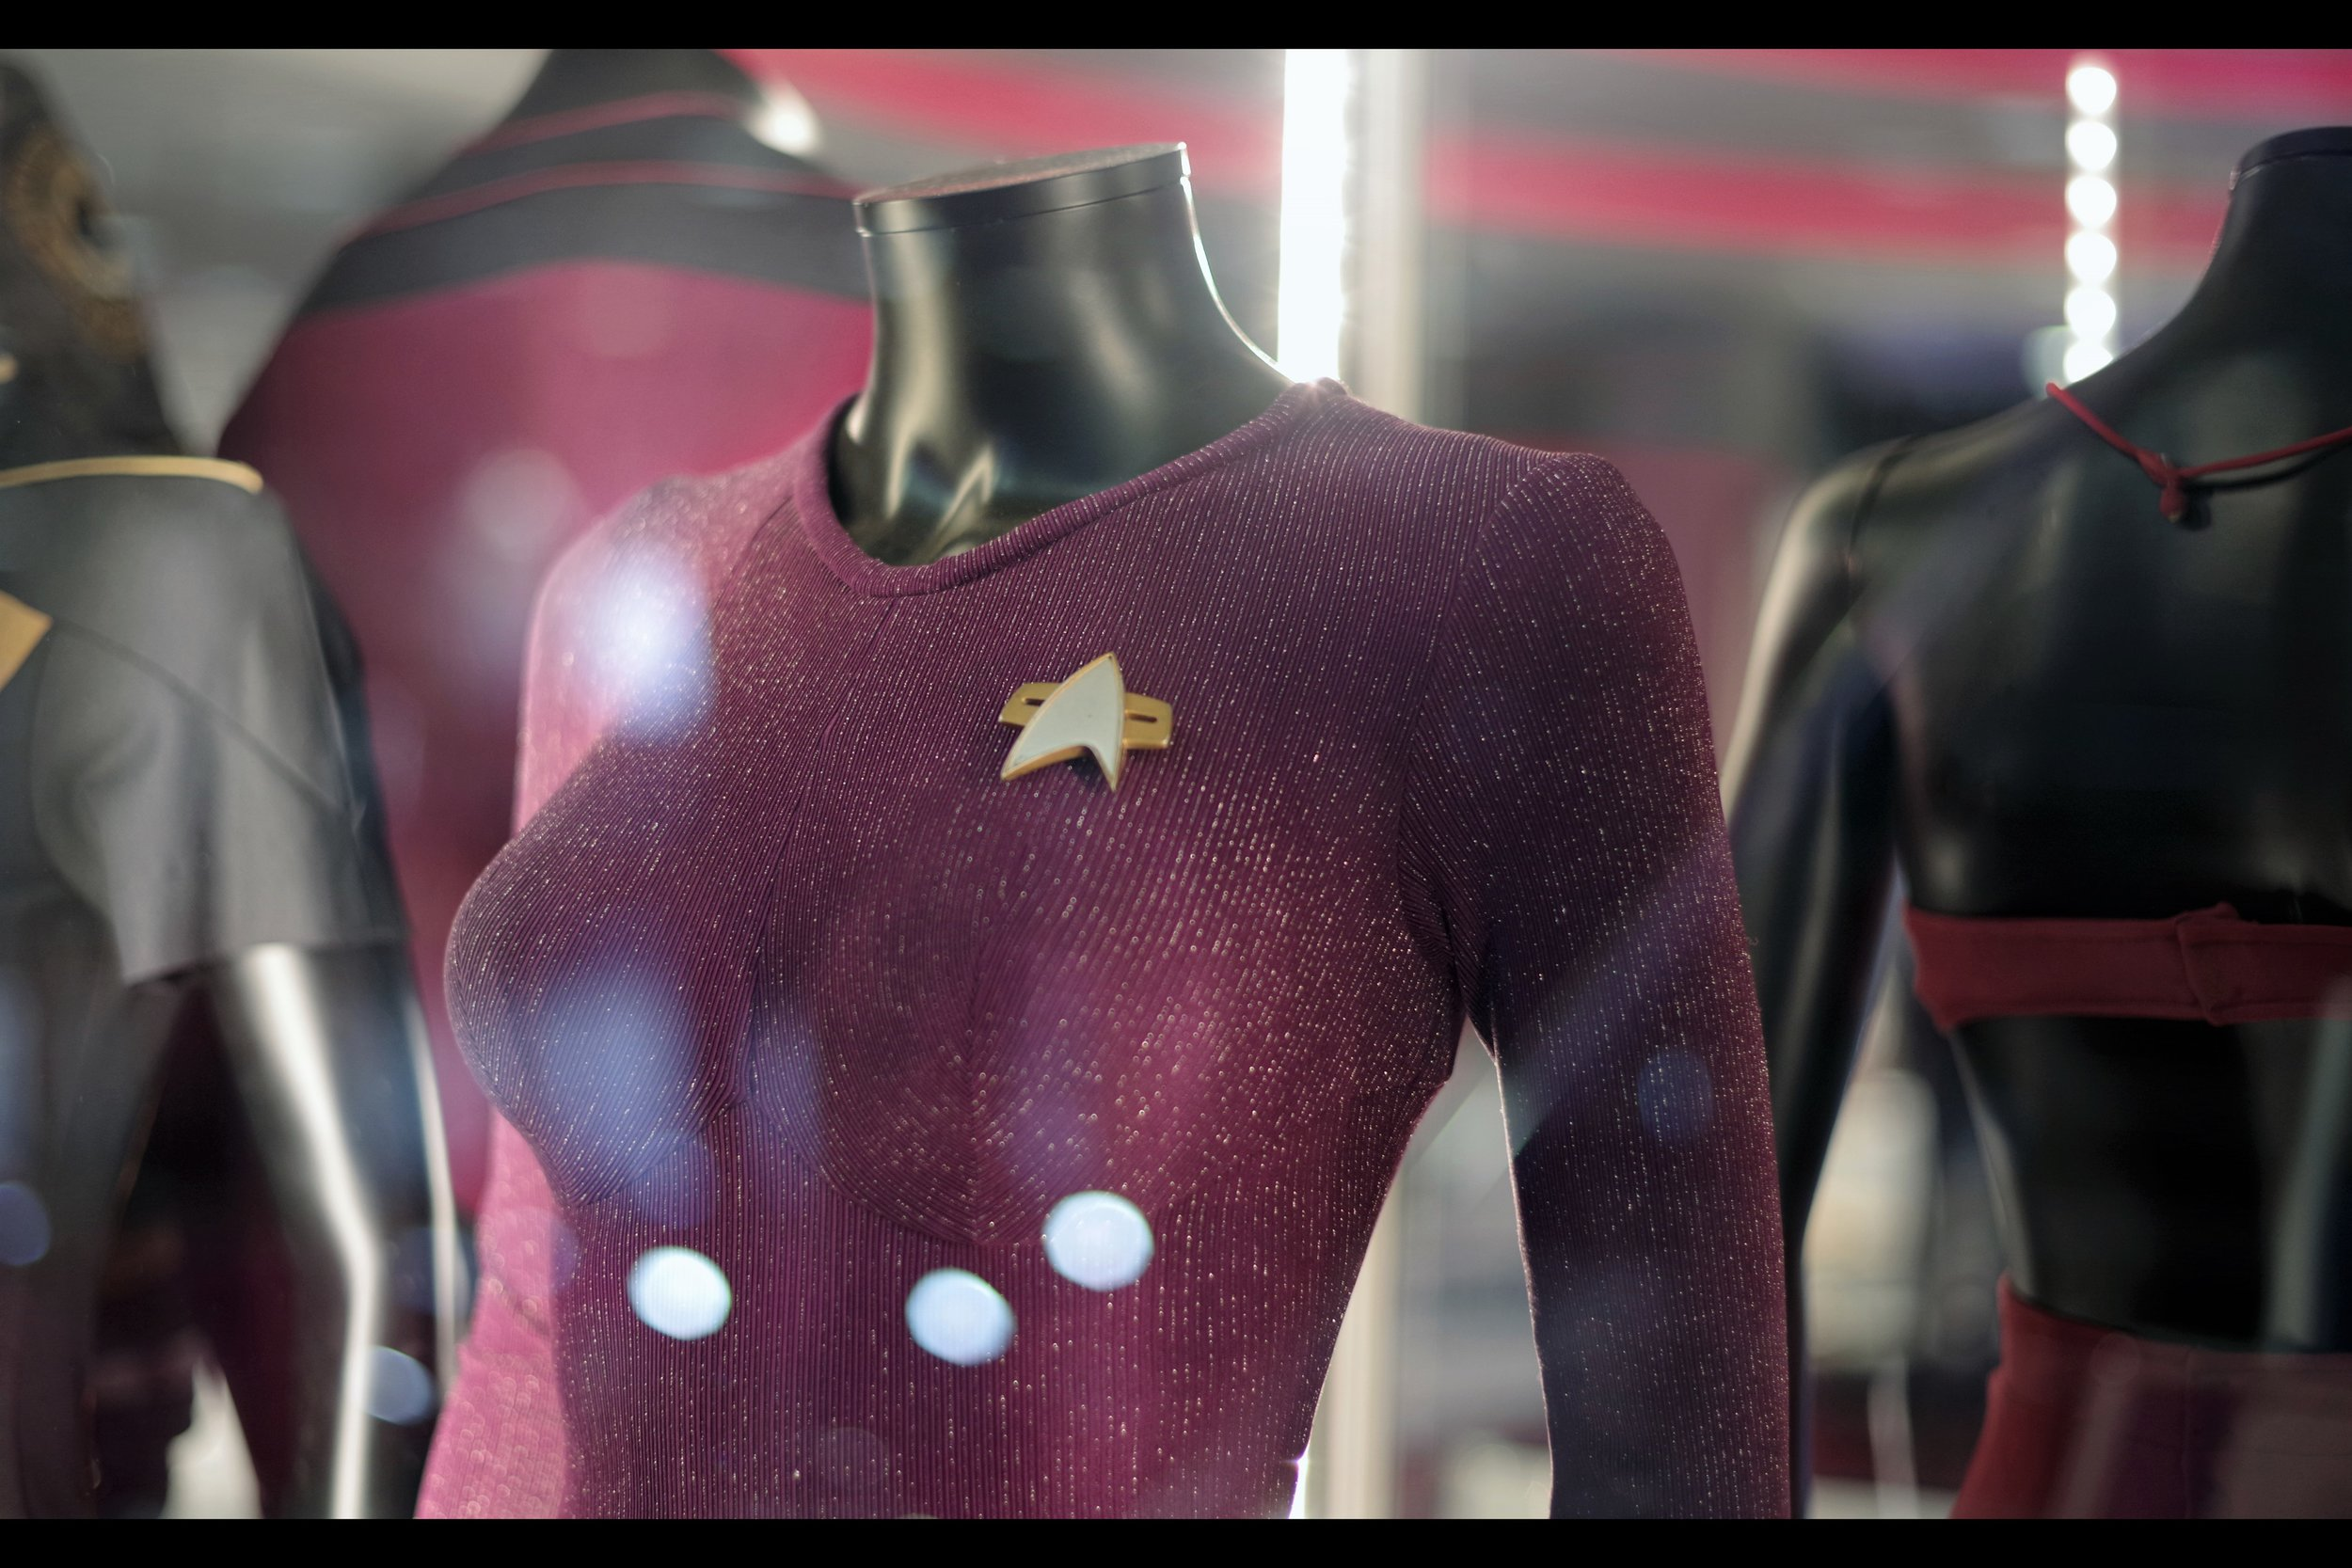 """""""I'm just a piece of clothing.... but you're making me feel uncomfortable.""""  - Inanimate object don't have feelings, but fine. I'll go and photograph Jean-Luc Picard's Starfleet uniform... Seven of Nine Starfleet uniform from Voyager. Winning bid: £7,500."""